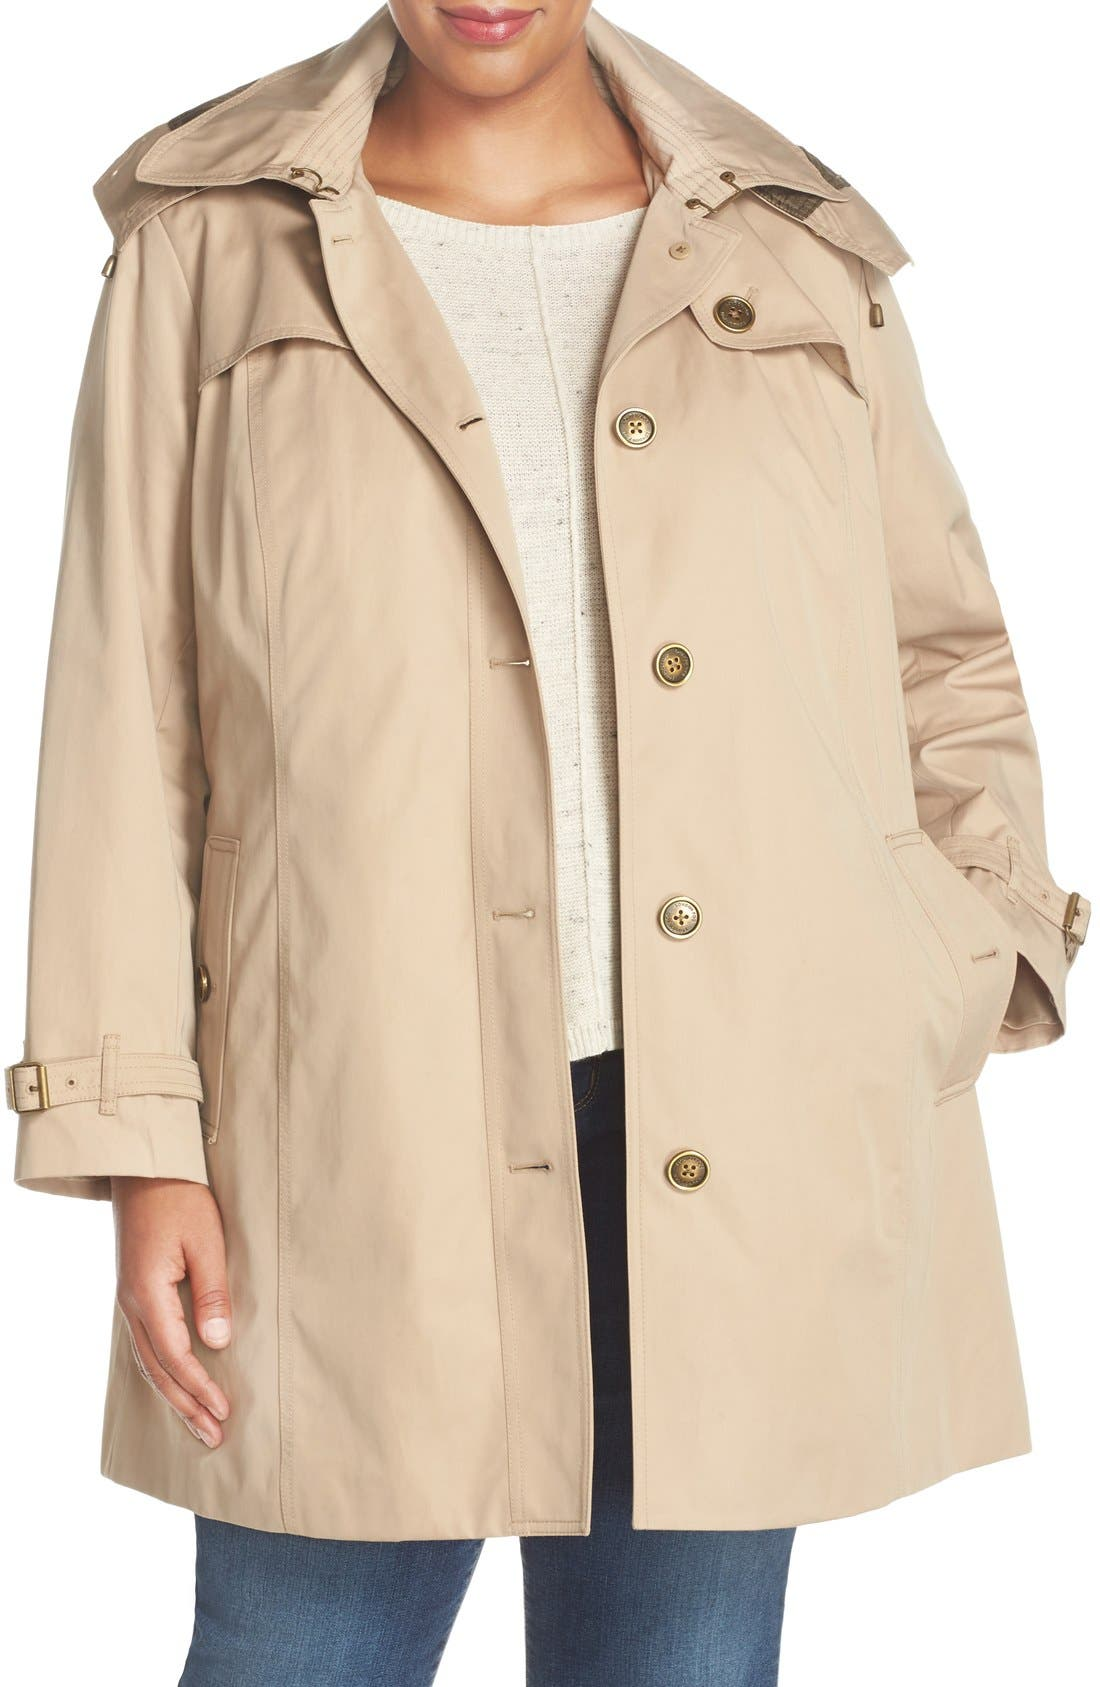 Alternate Image 1 Selected - London Fog Single Breasted Trench Coat (Plus Size)